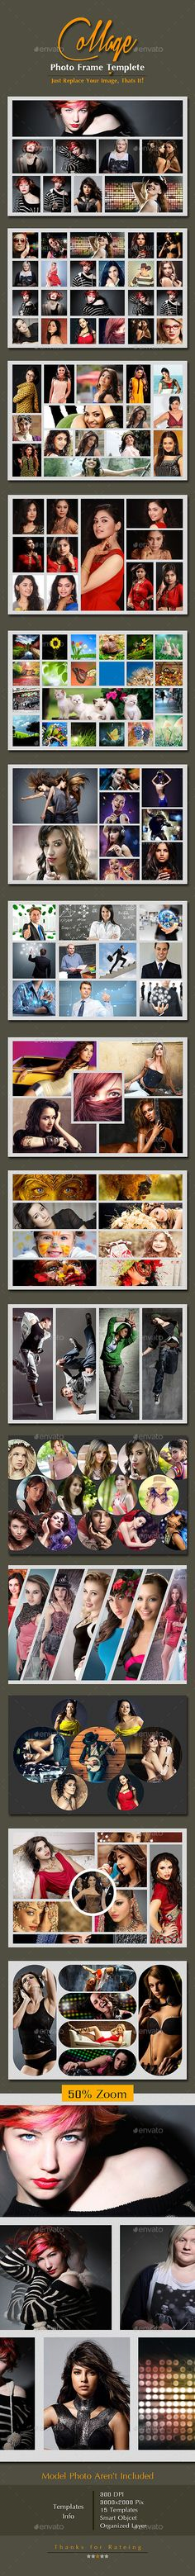 Photography Instagram Templates - 5 Designs Banners, Font logo and